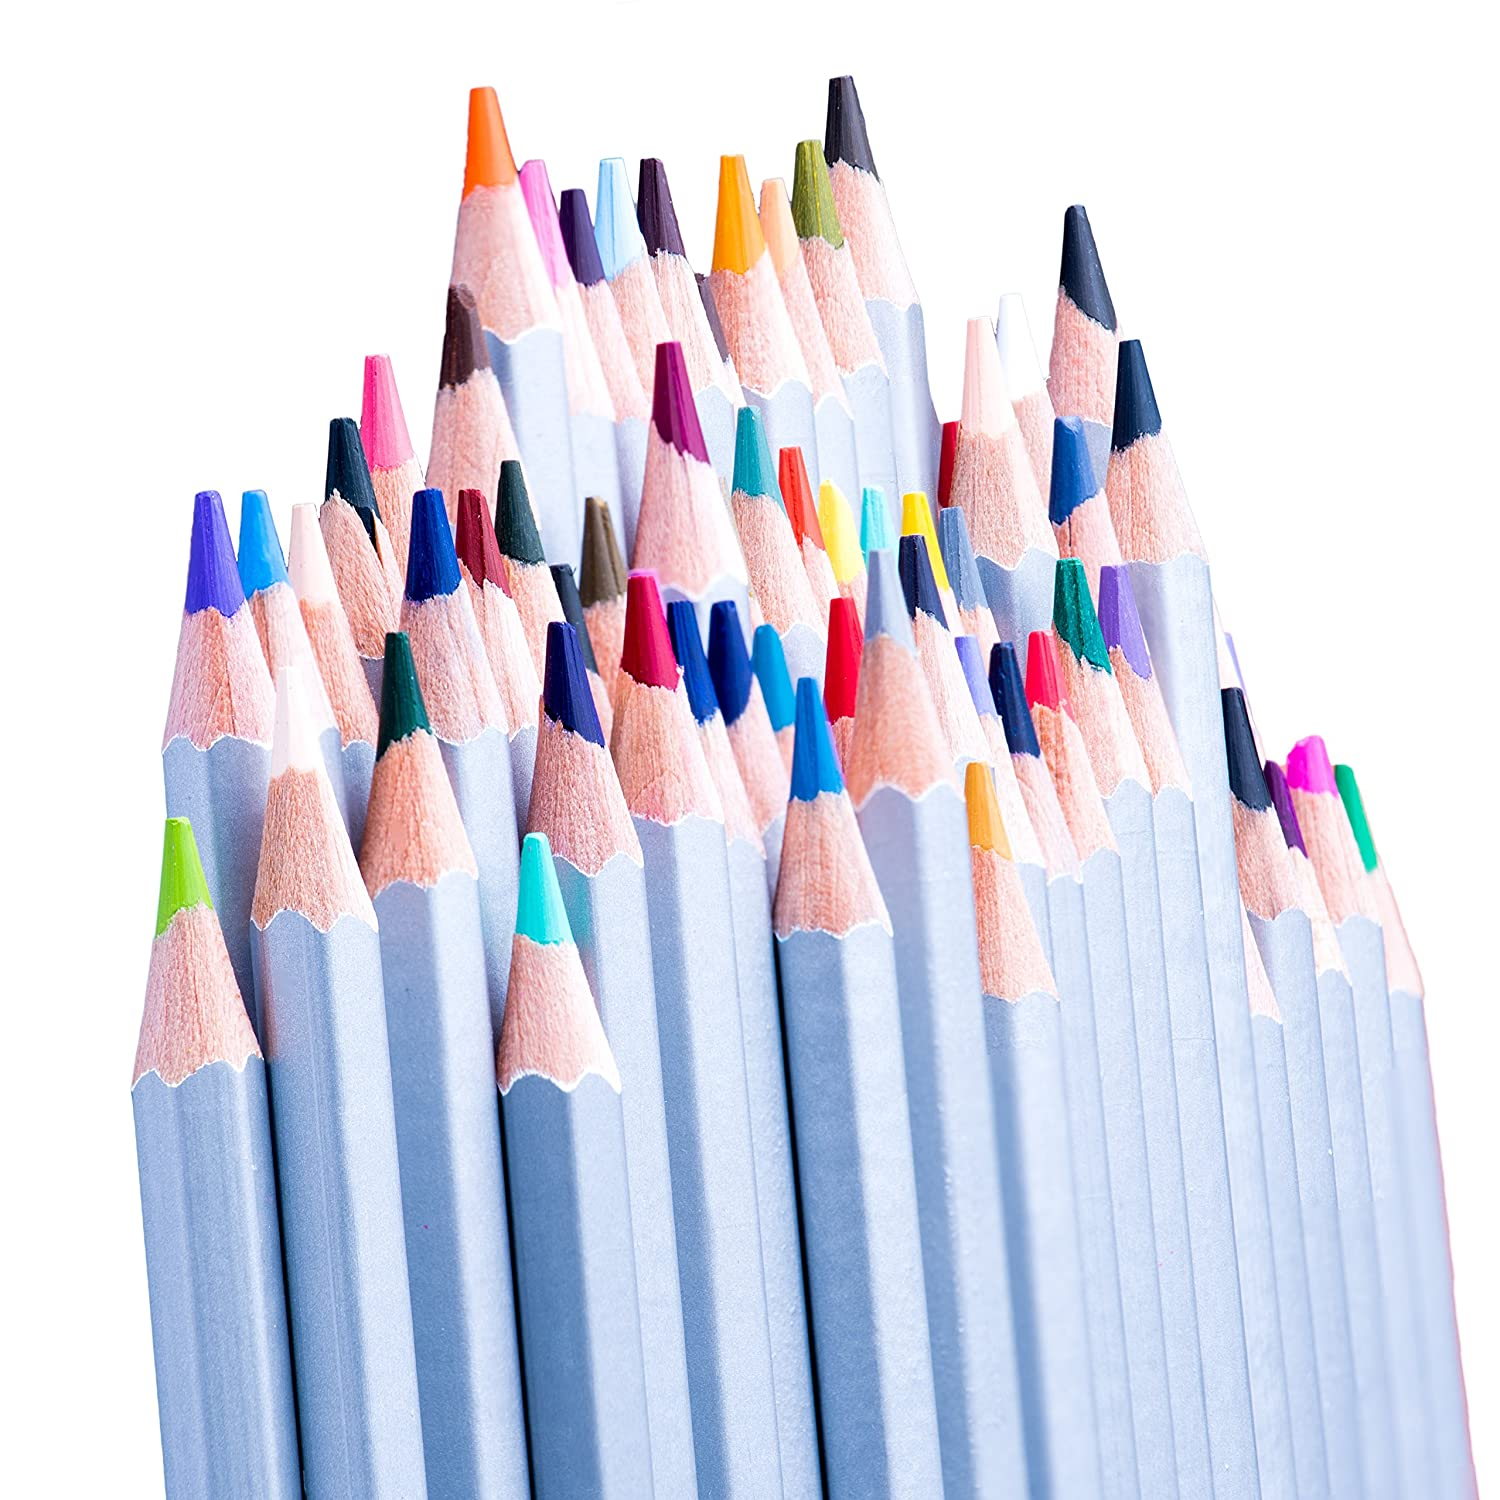 Sketching /& Coloring Books CreyArt Color Pencil Set with 48 Drawing Teens /& Children for Art Shading /& Coloring Pencils Colored Pencils for Adults